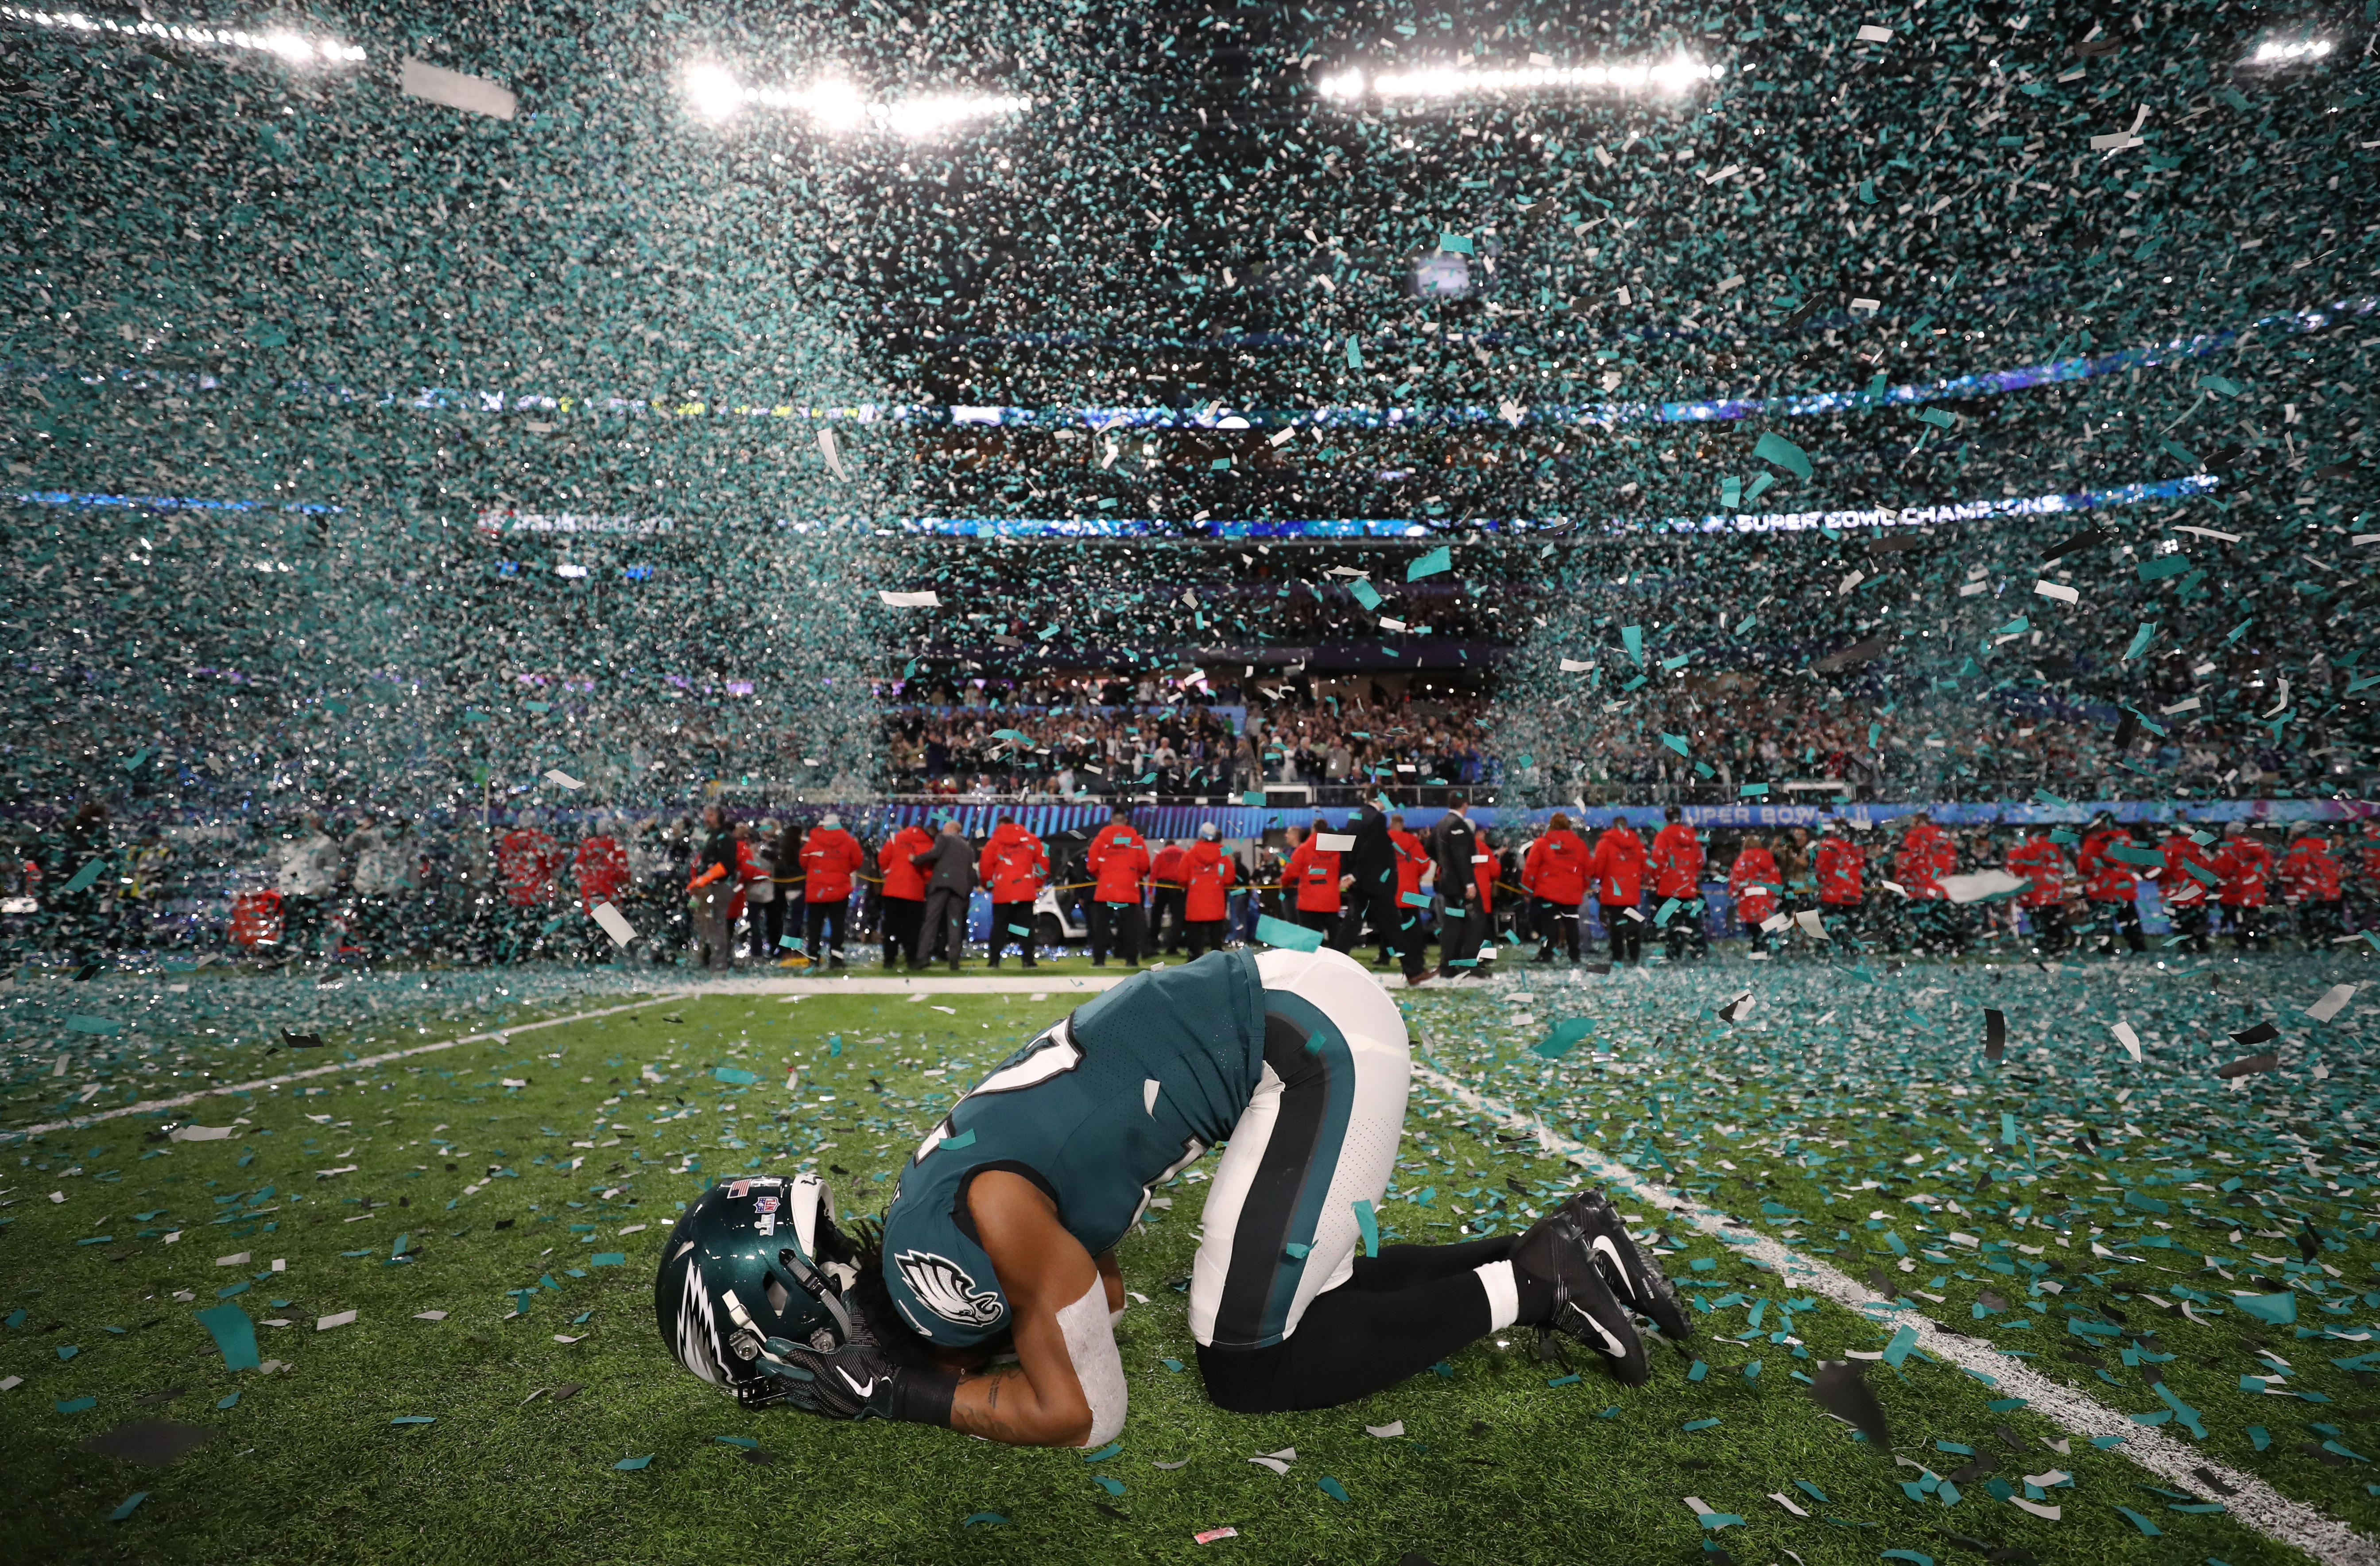 df20a2df4 Super Bowl LII  Ratings for football s biggest game lowest since 2009